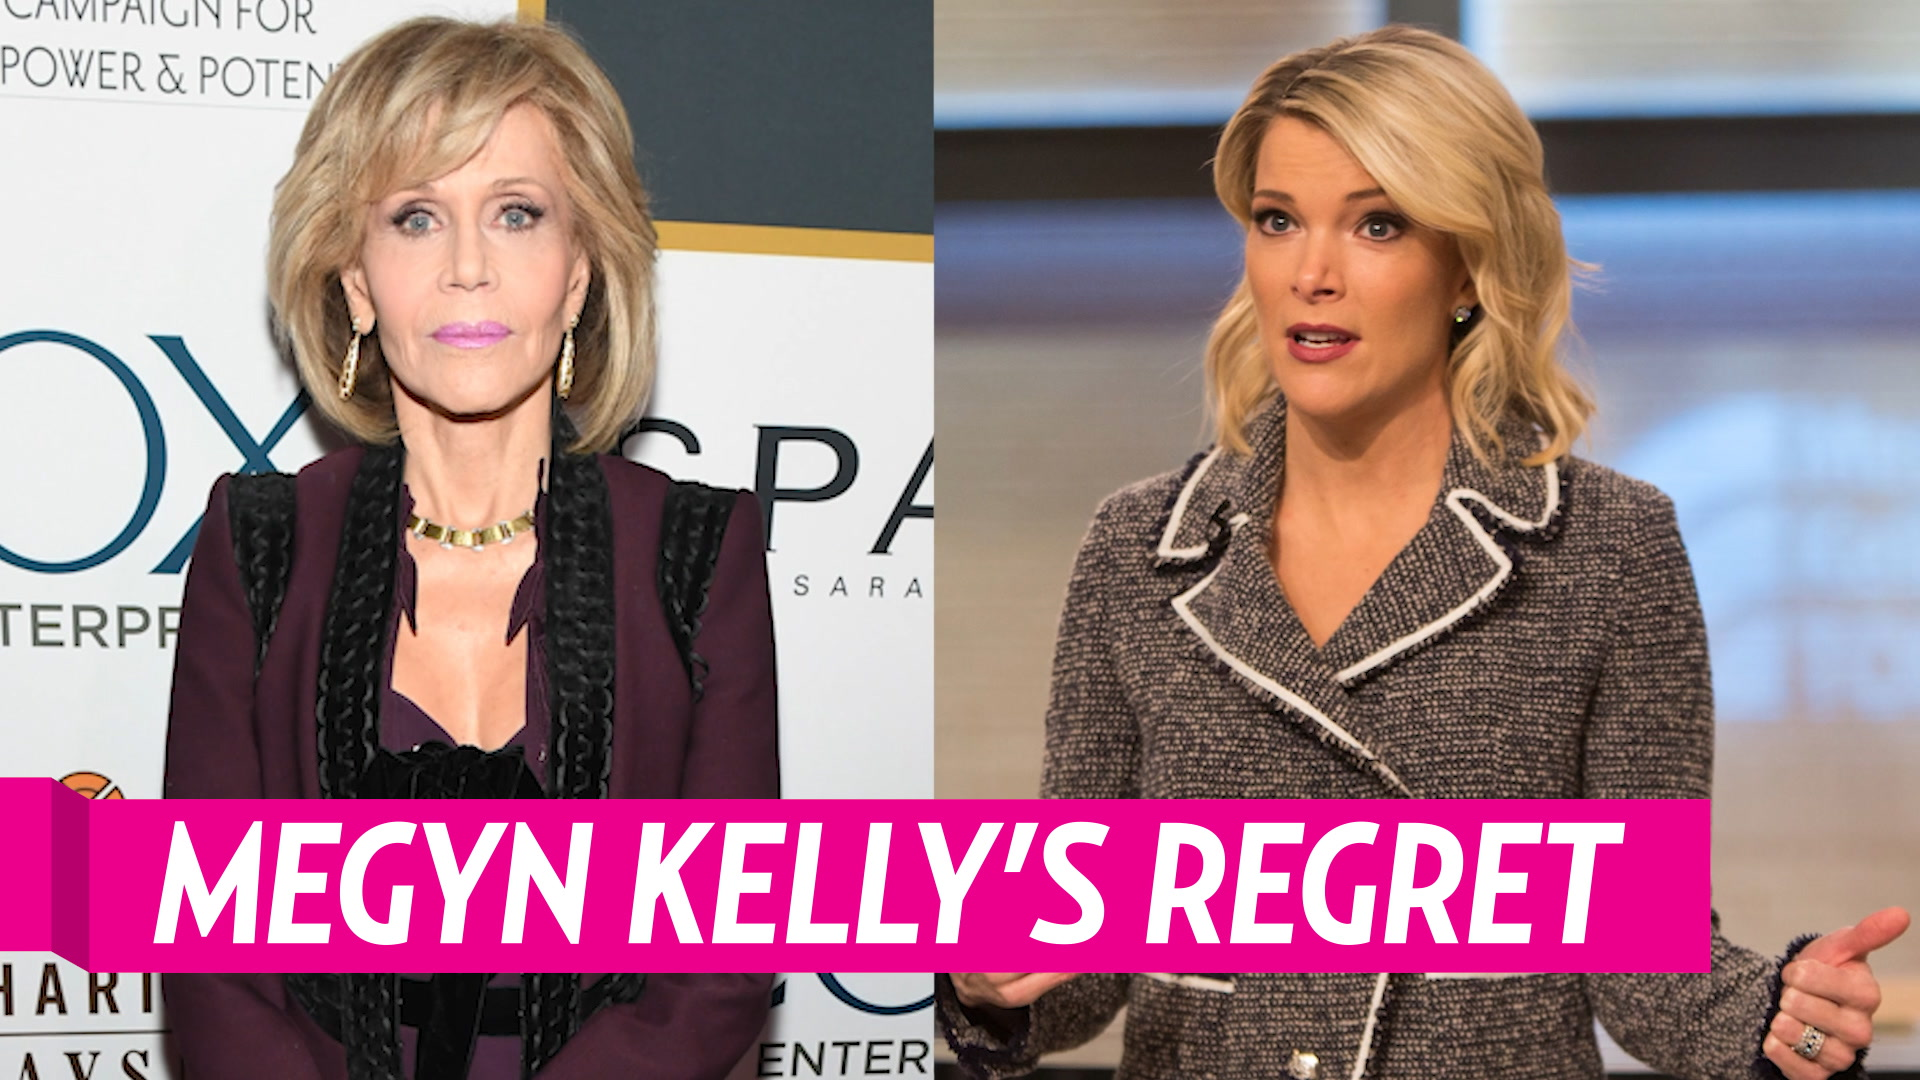 Megyn Kelly Regrets Inviting Jane Fonda For Today Interview